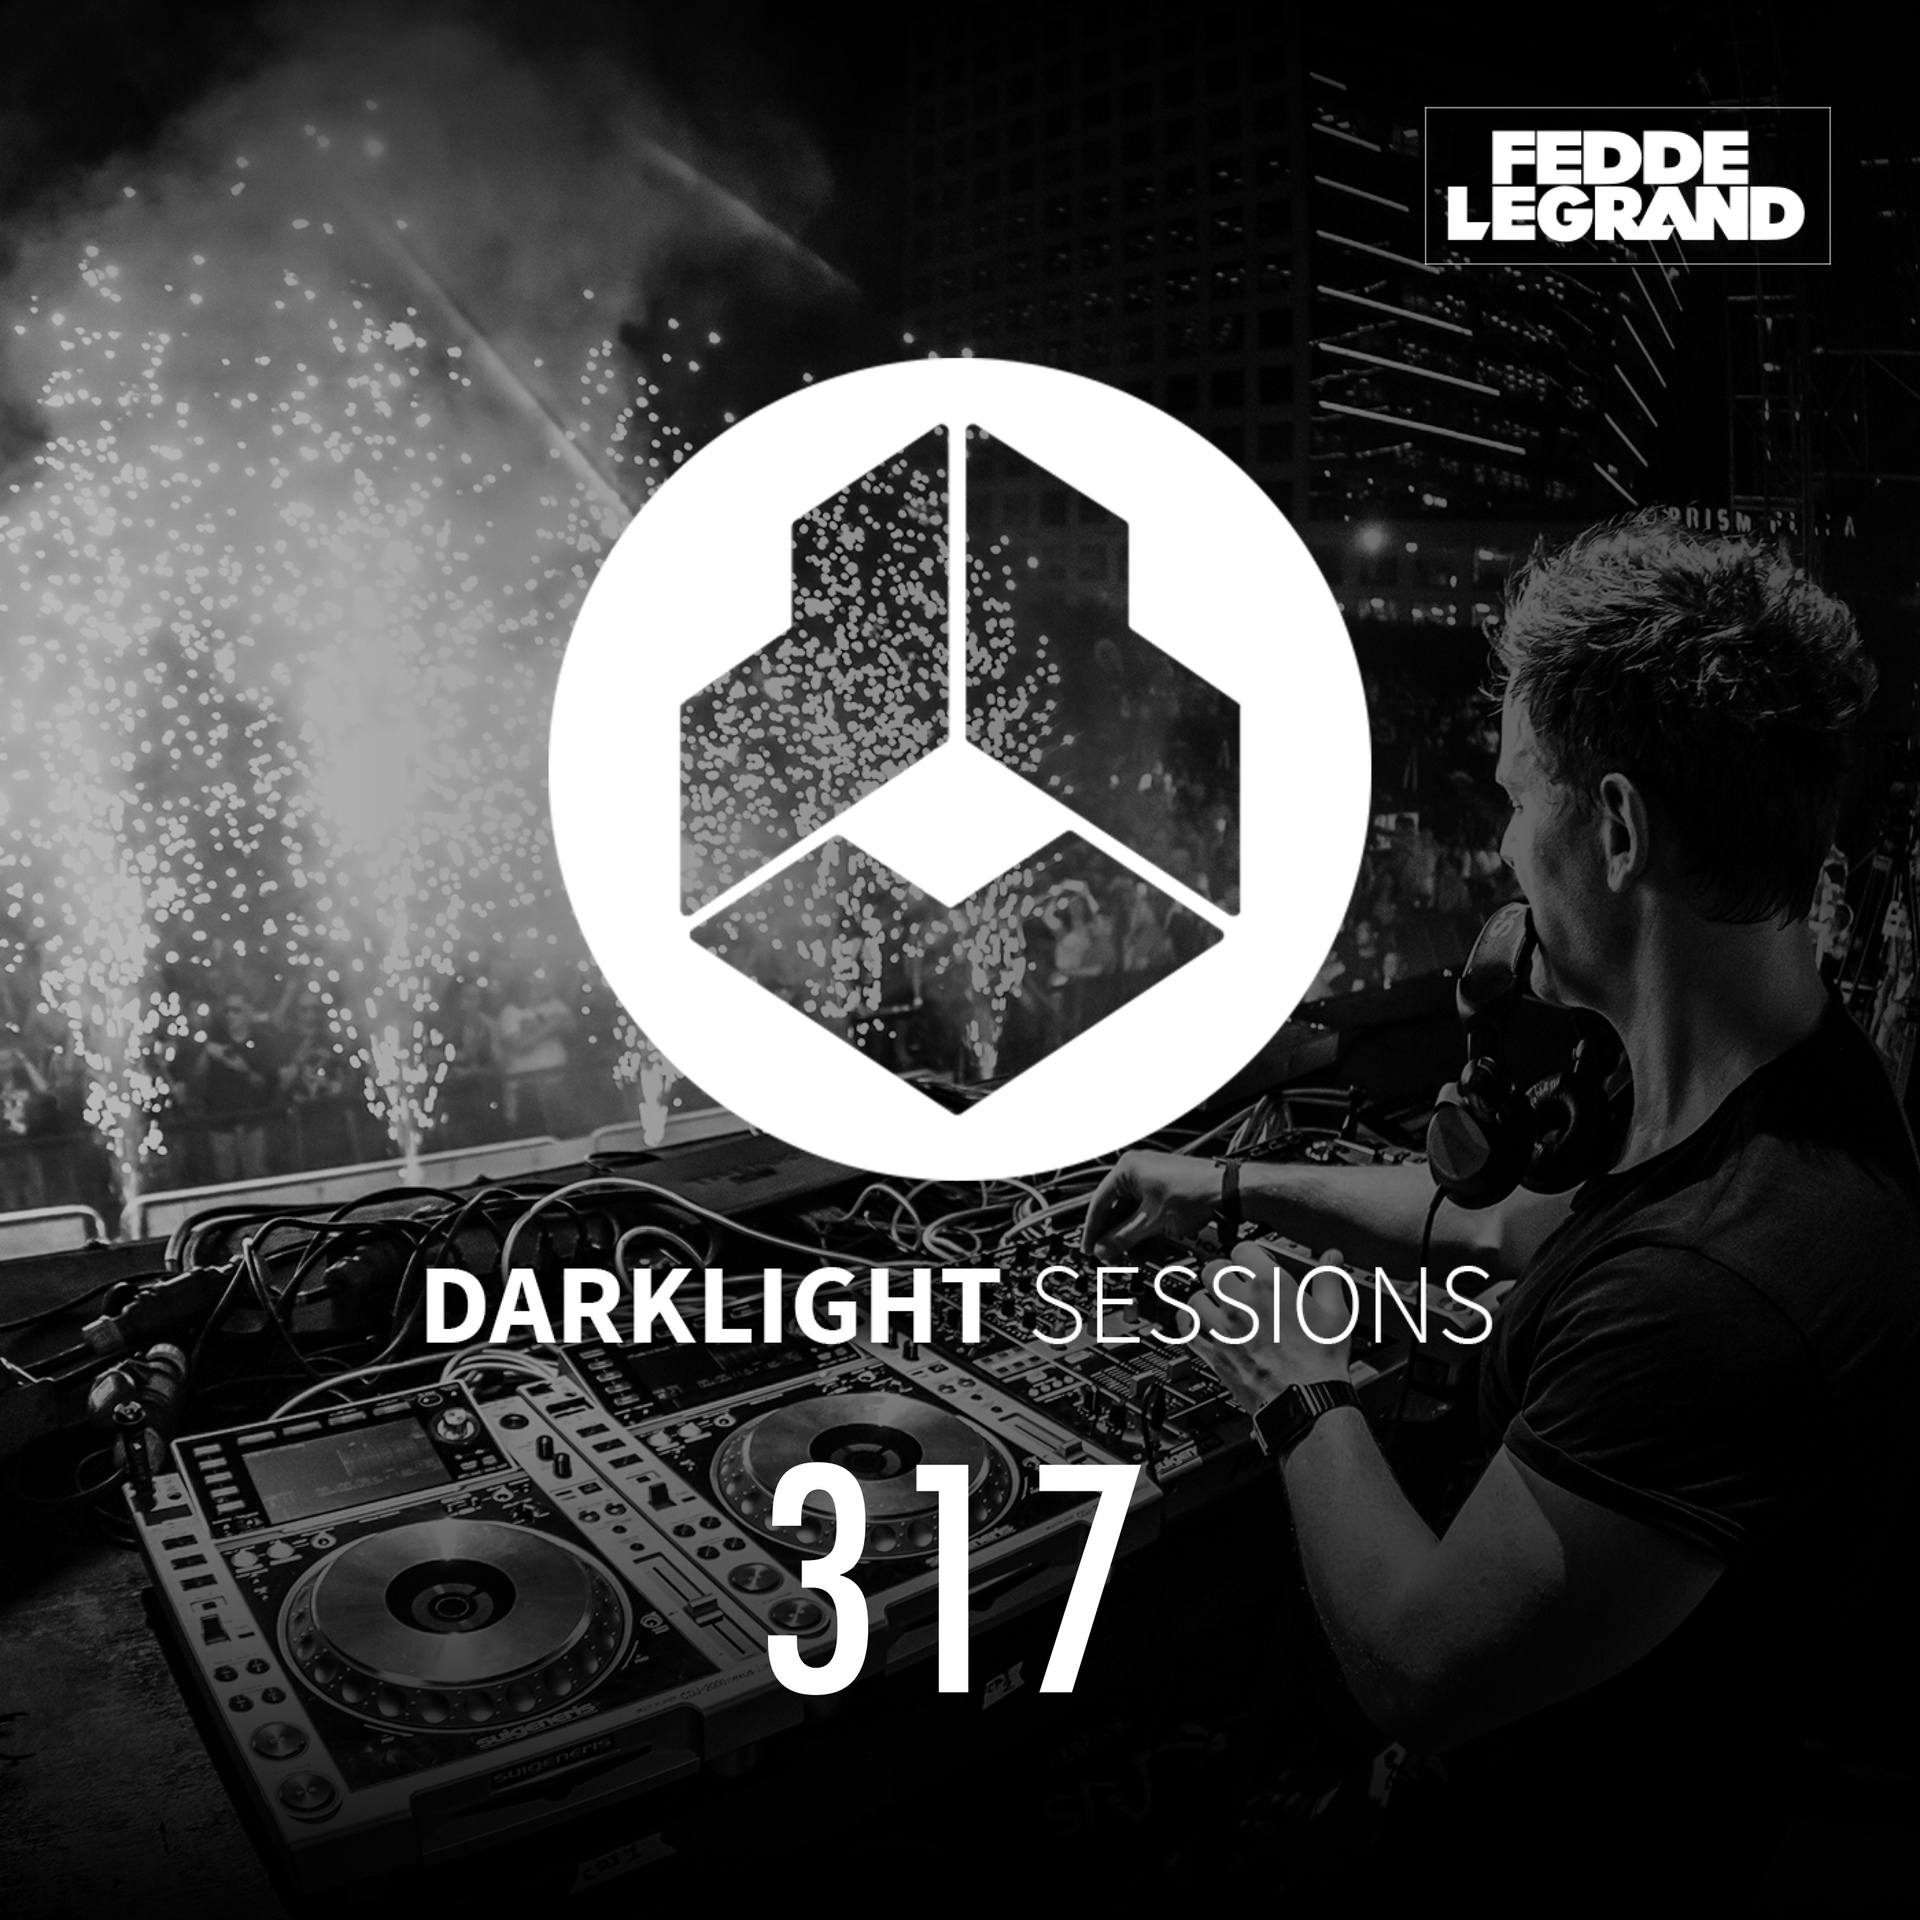 Darklight Sessions 317